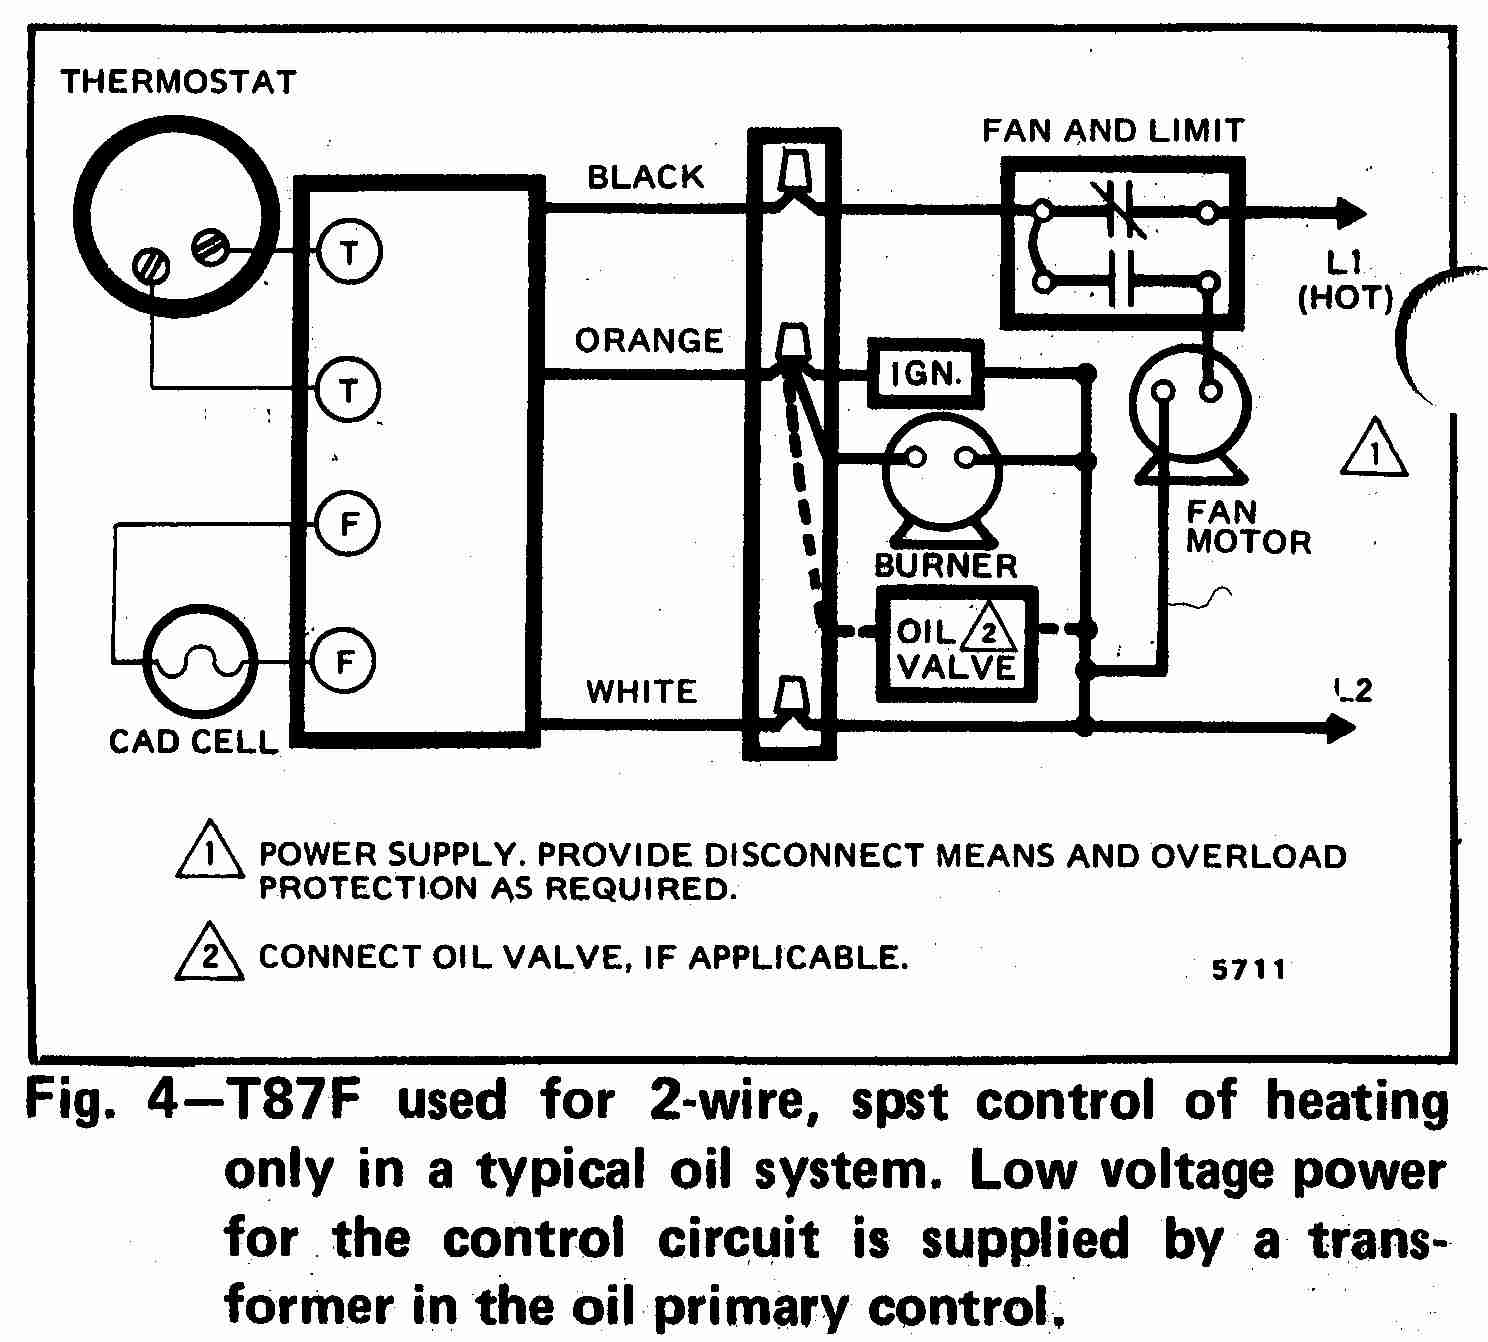 TT_T87F_0002_2W_DJF room thermostat wiring diagrams for hvac systems Marley Electric Baseboard Heaters Wiring at honlapkeszites.co